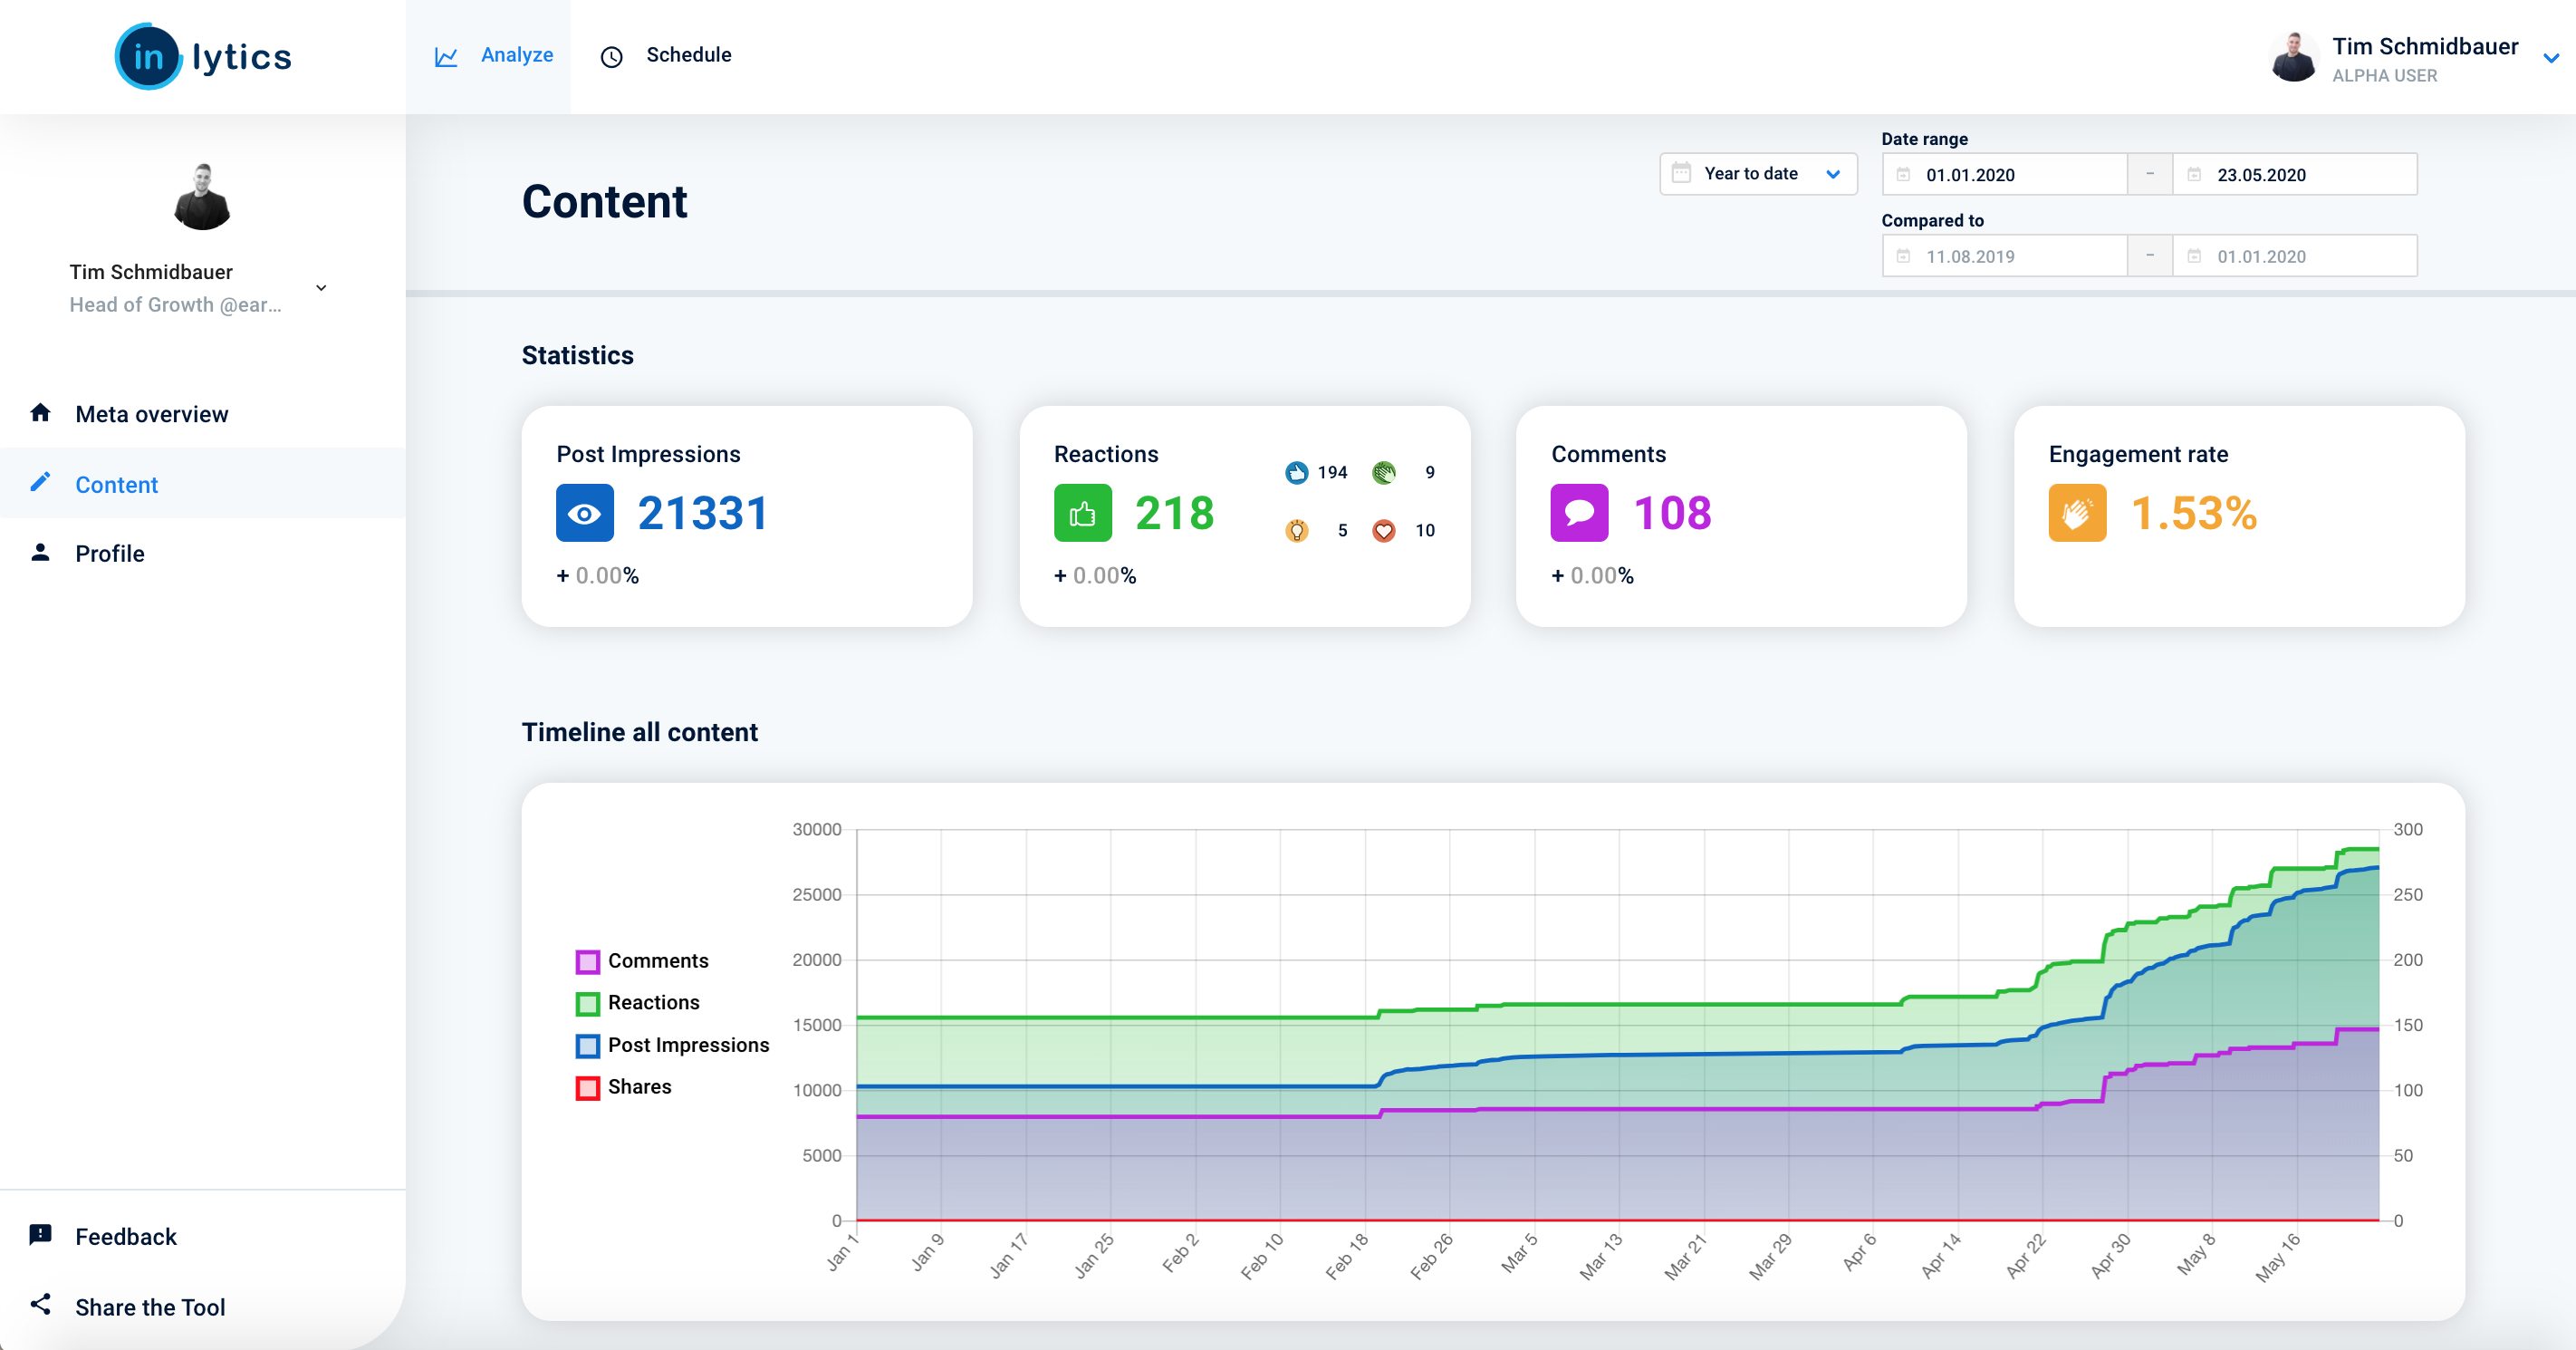 Content overview dashboard